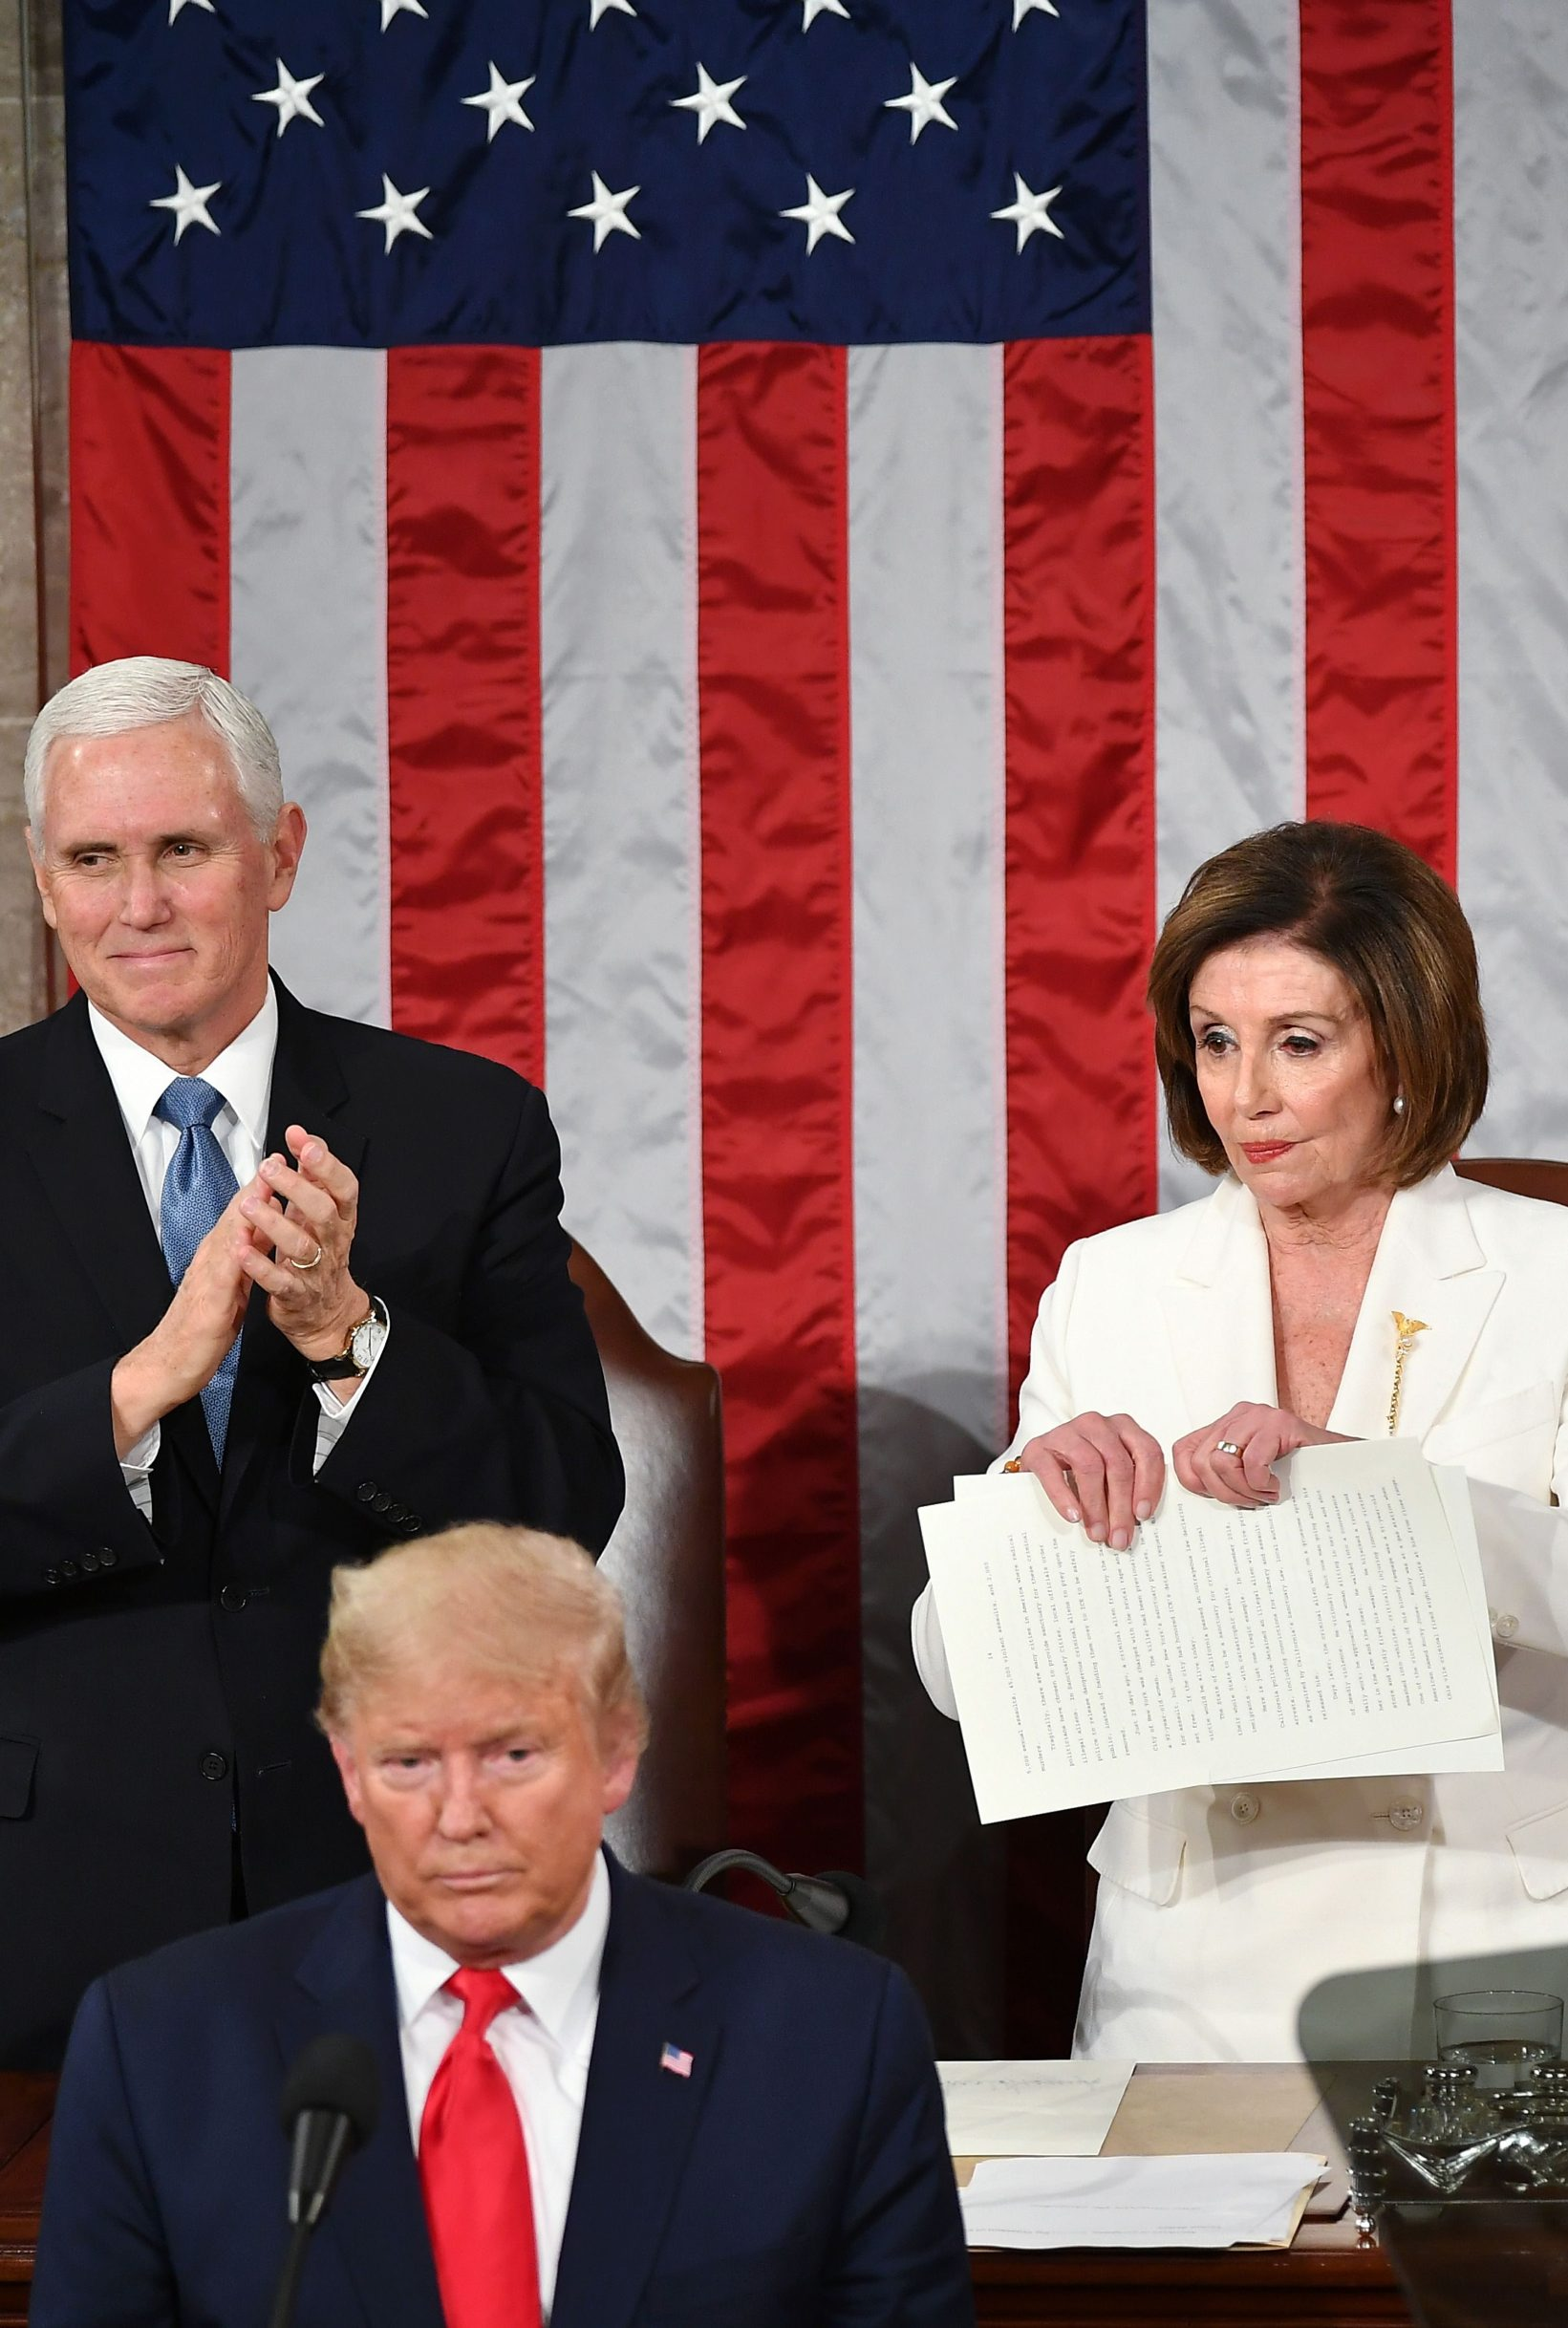 Speaker of the US House of Representatives Nancy Pelosi rips a copy of US President Donald Trumps speech after he delivered the State of the Union address at the US Capitol in Washington, DC, on February 4, 2020. (Photo by MANDEL NGAN / AFP)